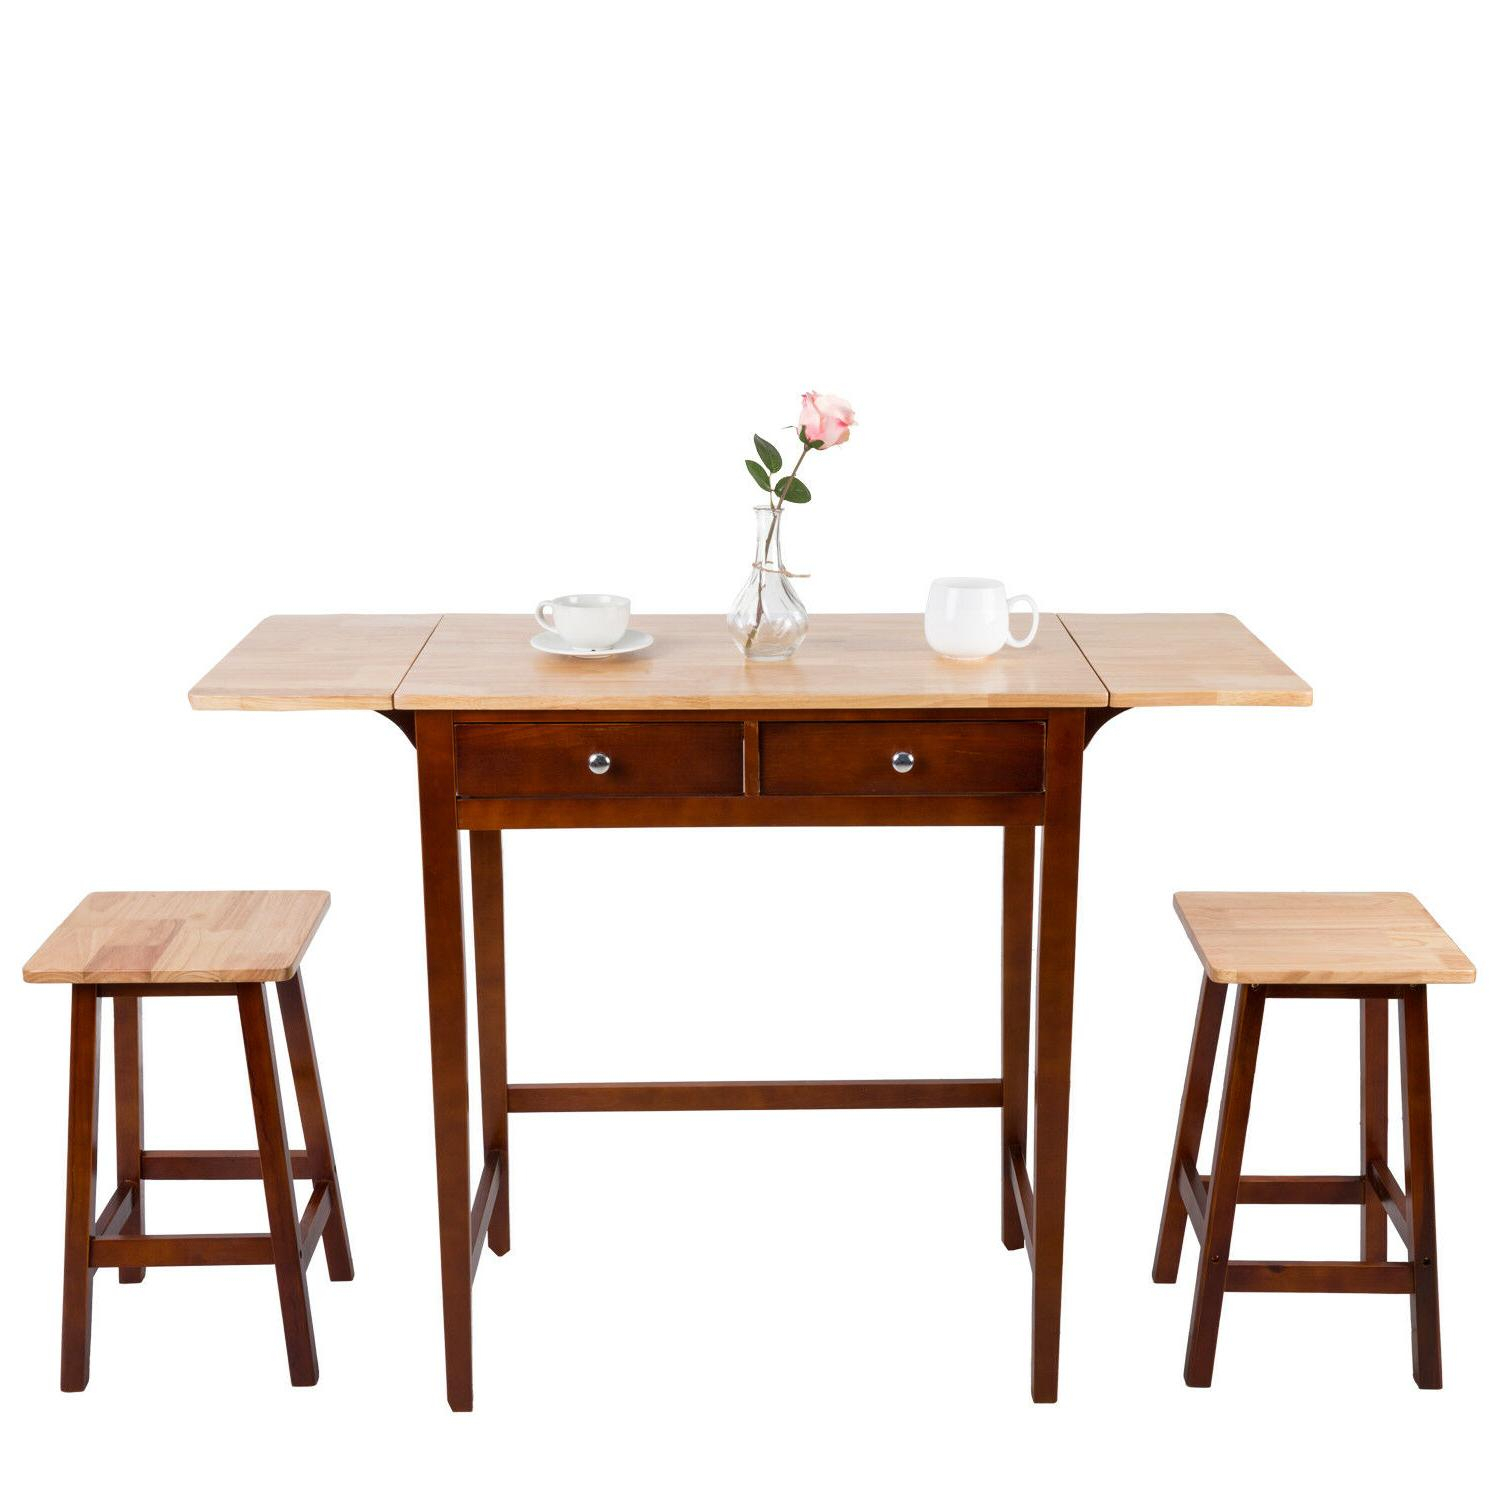 Dining Set 3 Pc Wood Breakfast Nook Bist Throughout Best And Newest Ligon 3 Piece Breakfast Nook Dining Sets (Image 6 of 20)